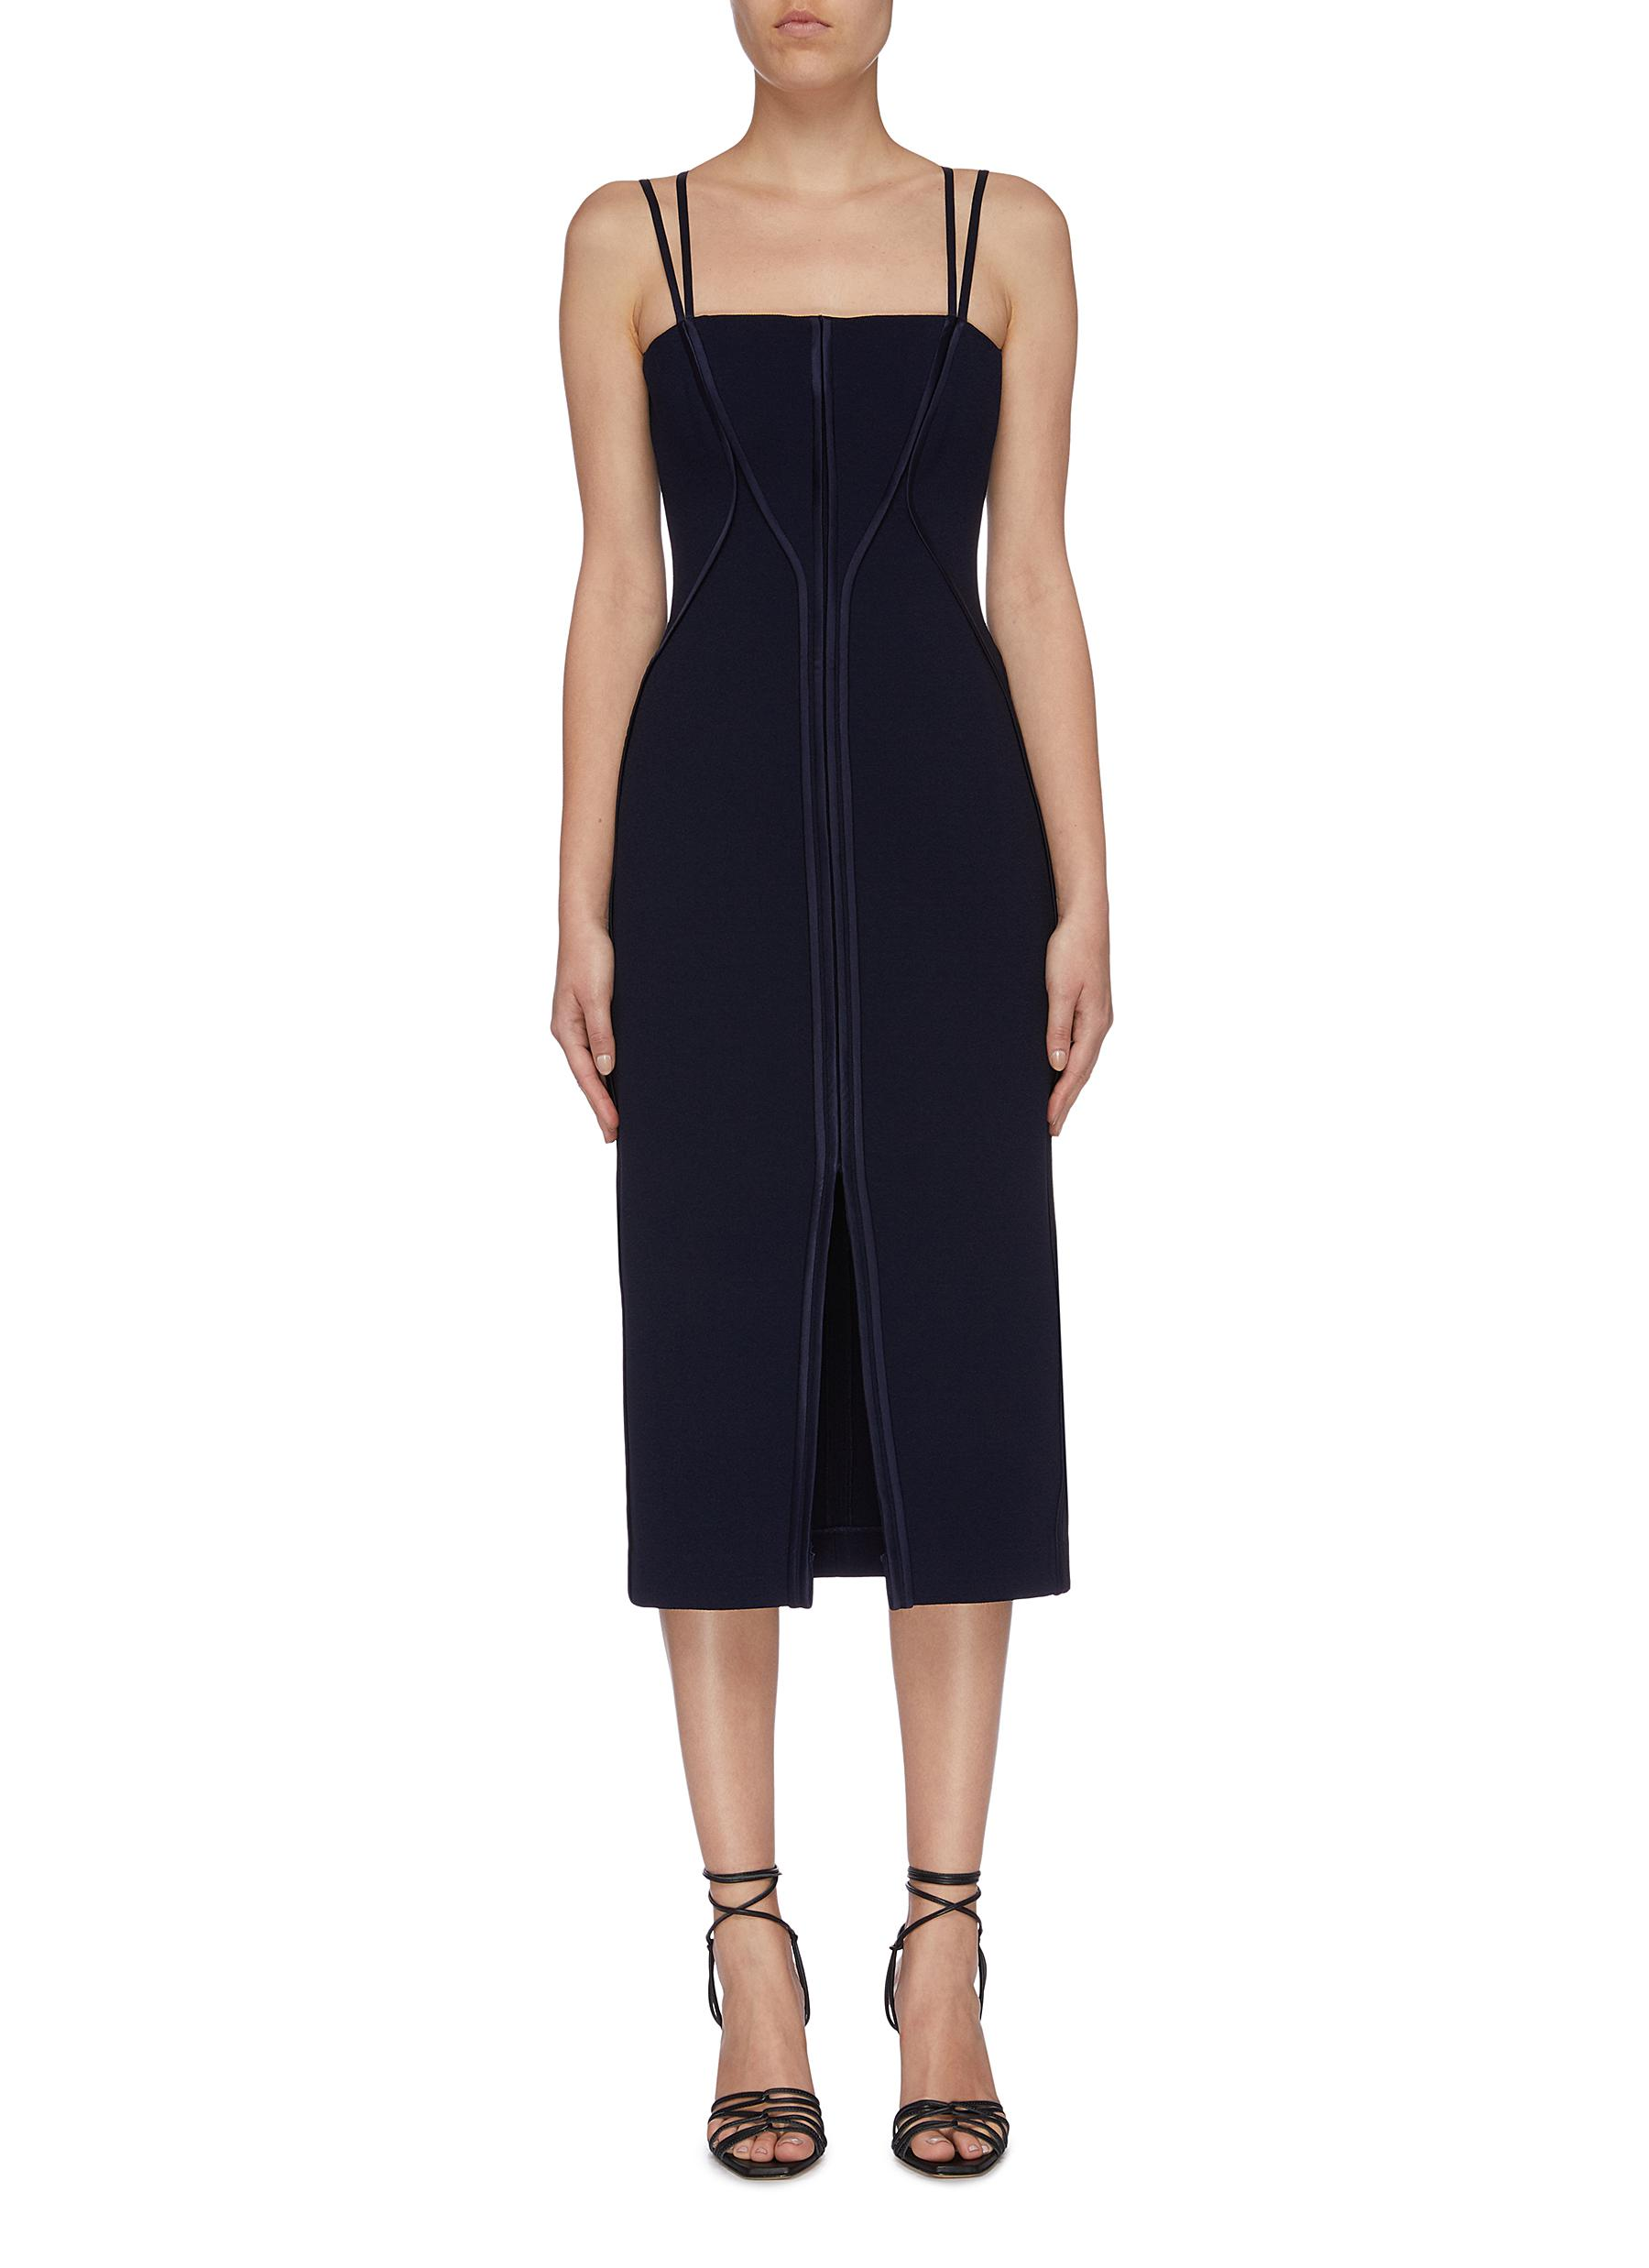 Annex strappy crepe bustier dress by Dion Lee